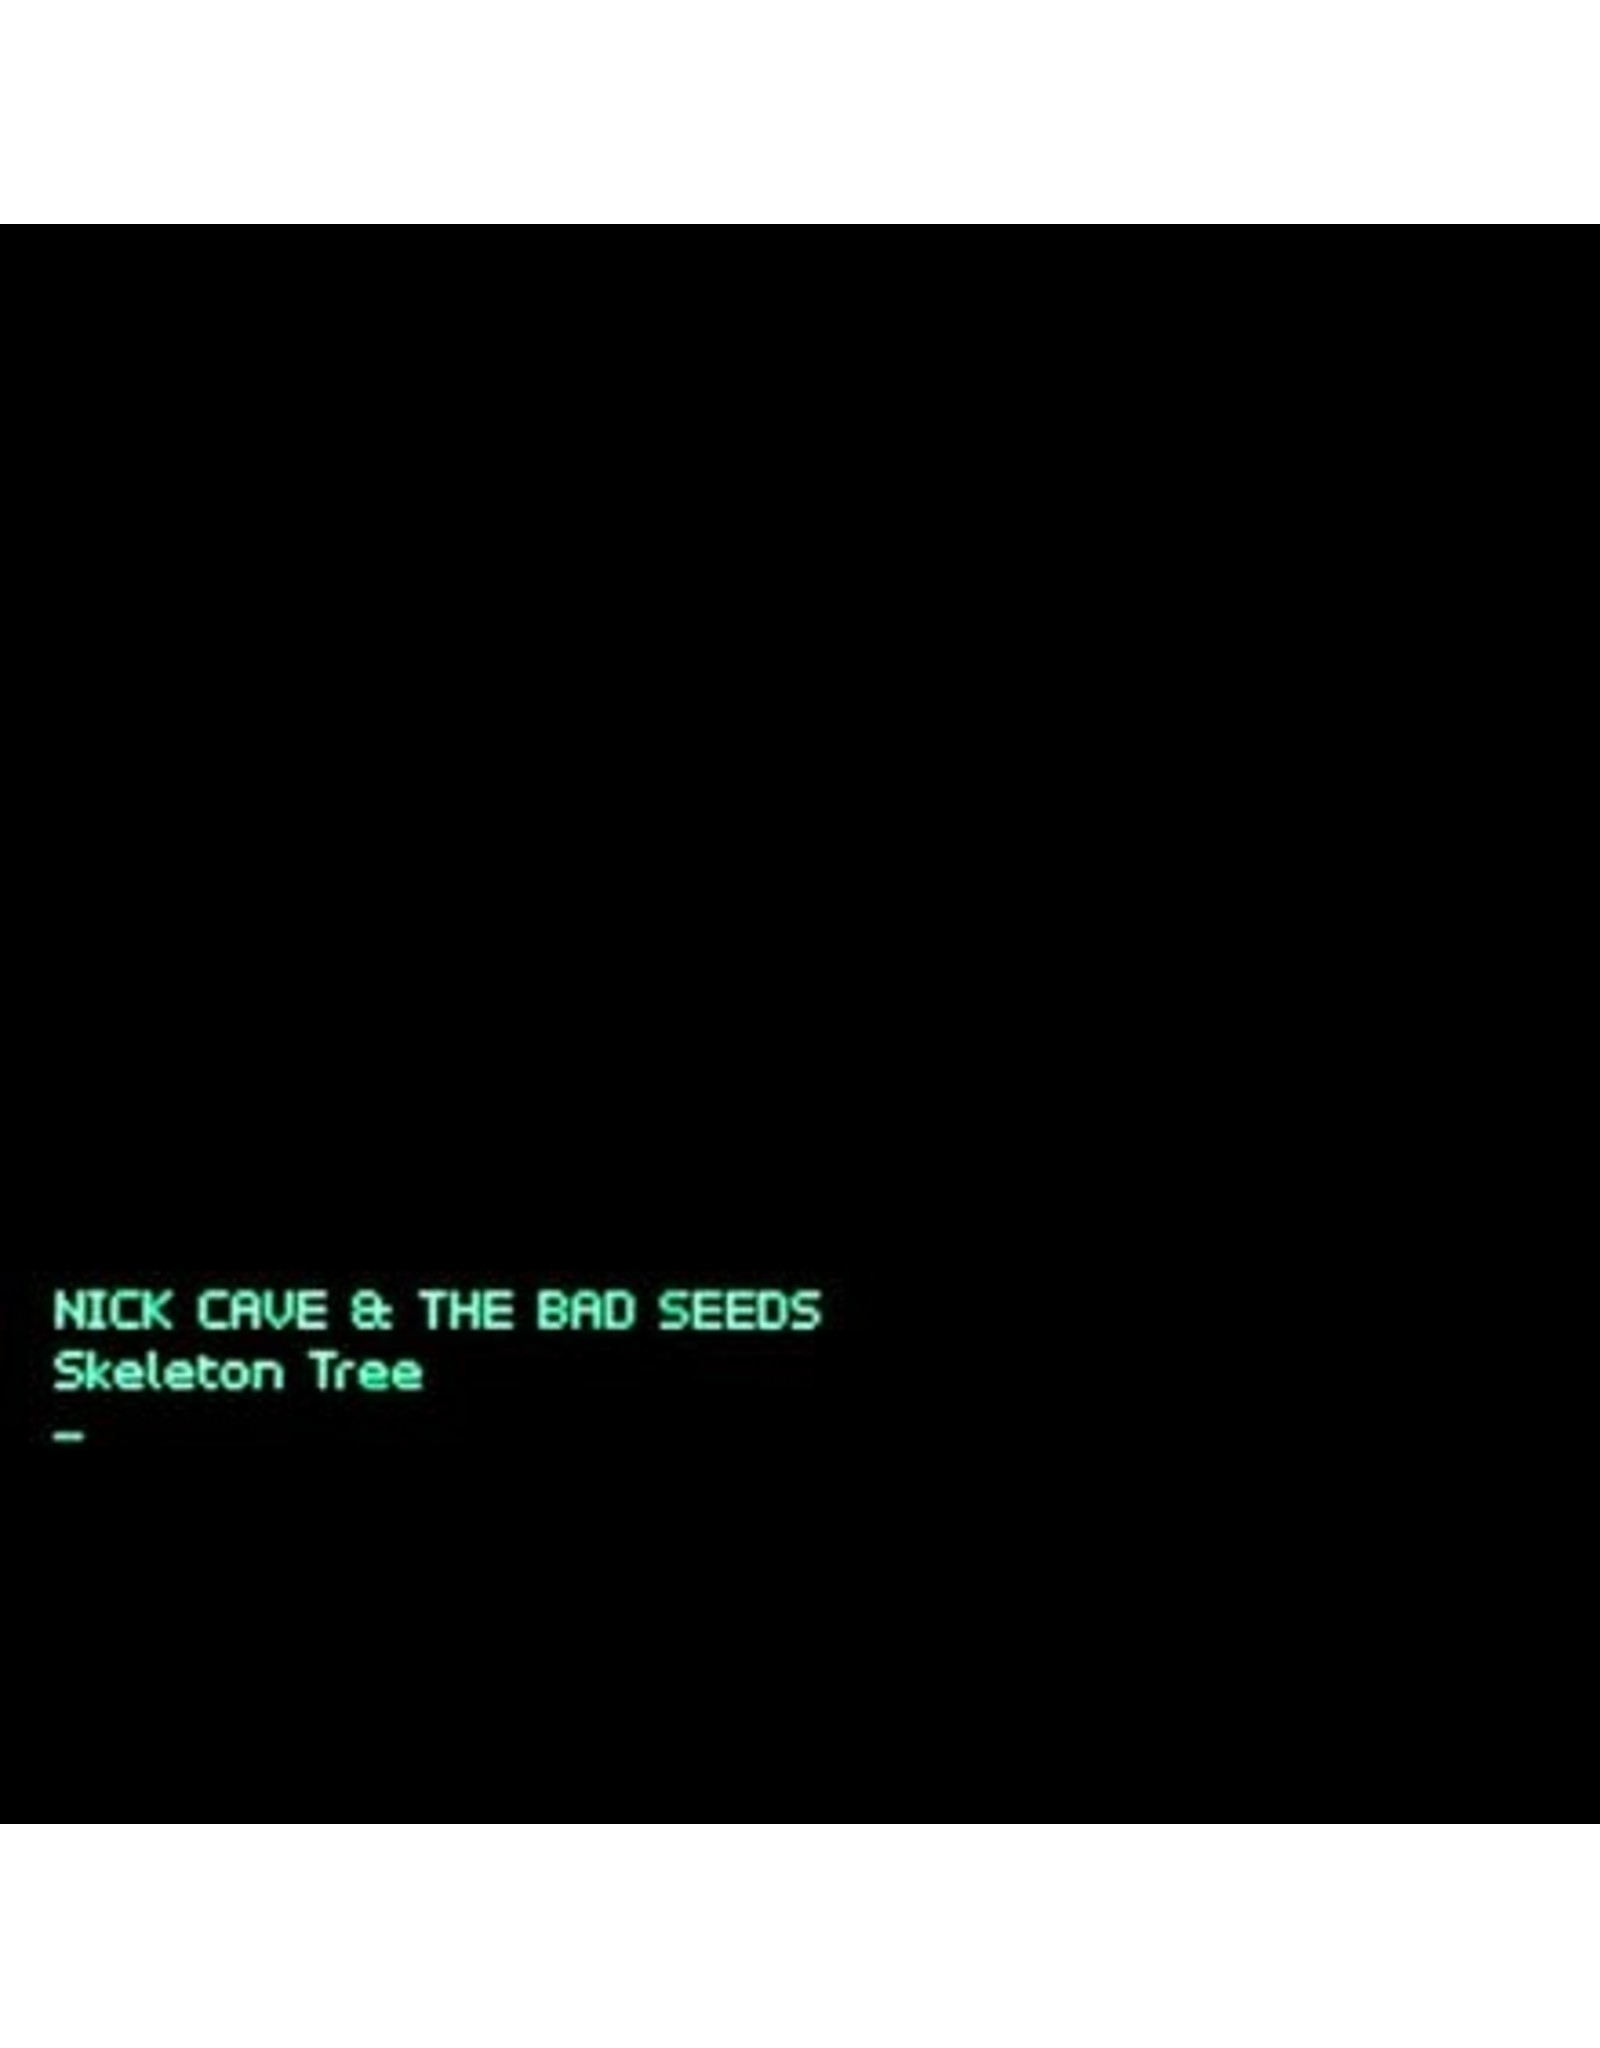 Bad Seed LTD. Cave, Nick & The Bad Seeds: Skeleton Tree LP